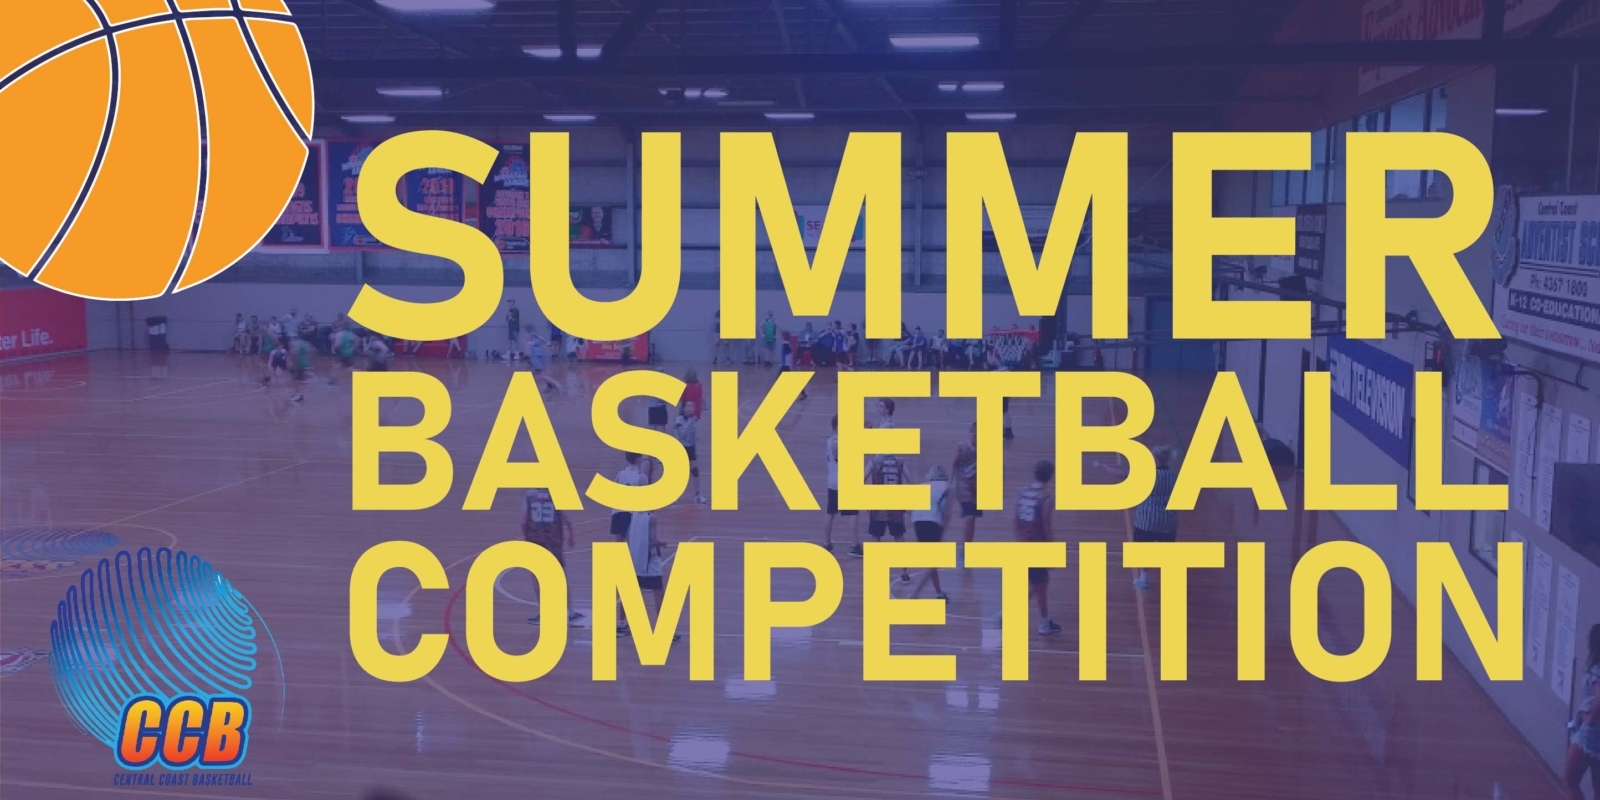 Nominations now open for Summer Basketball Competition 21/22